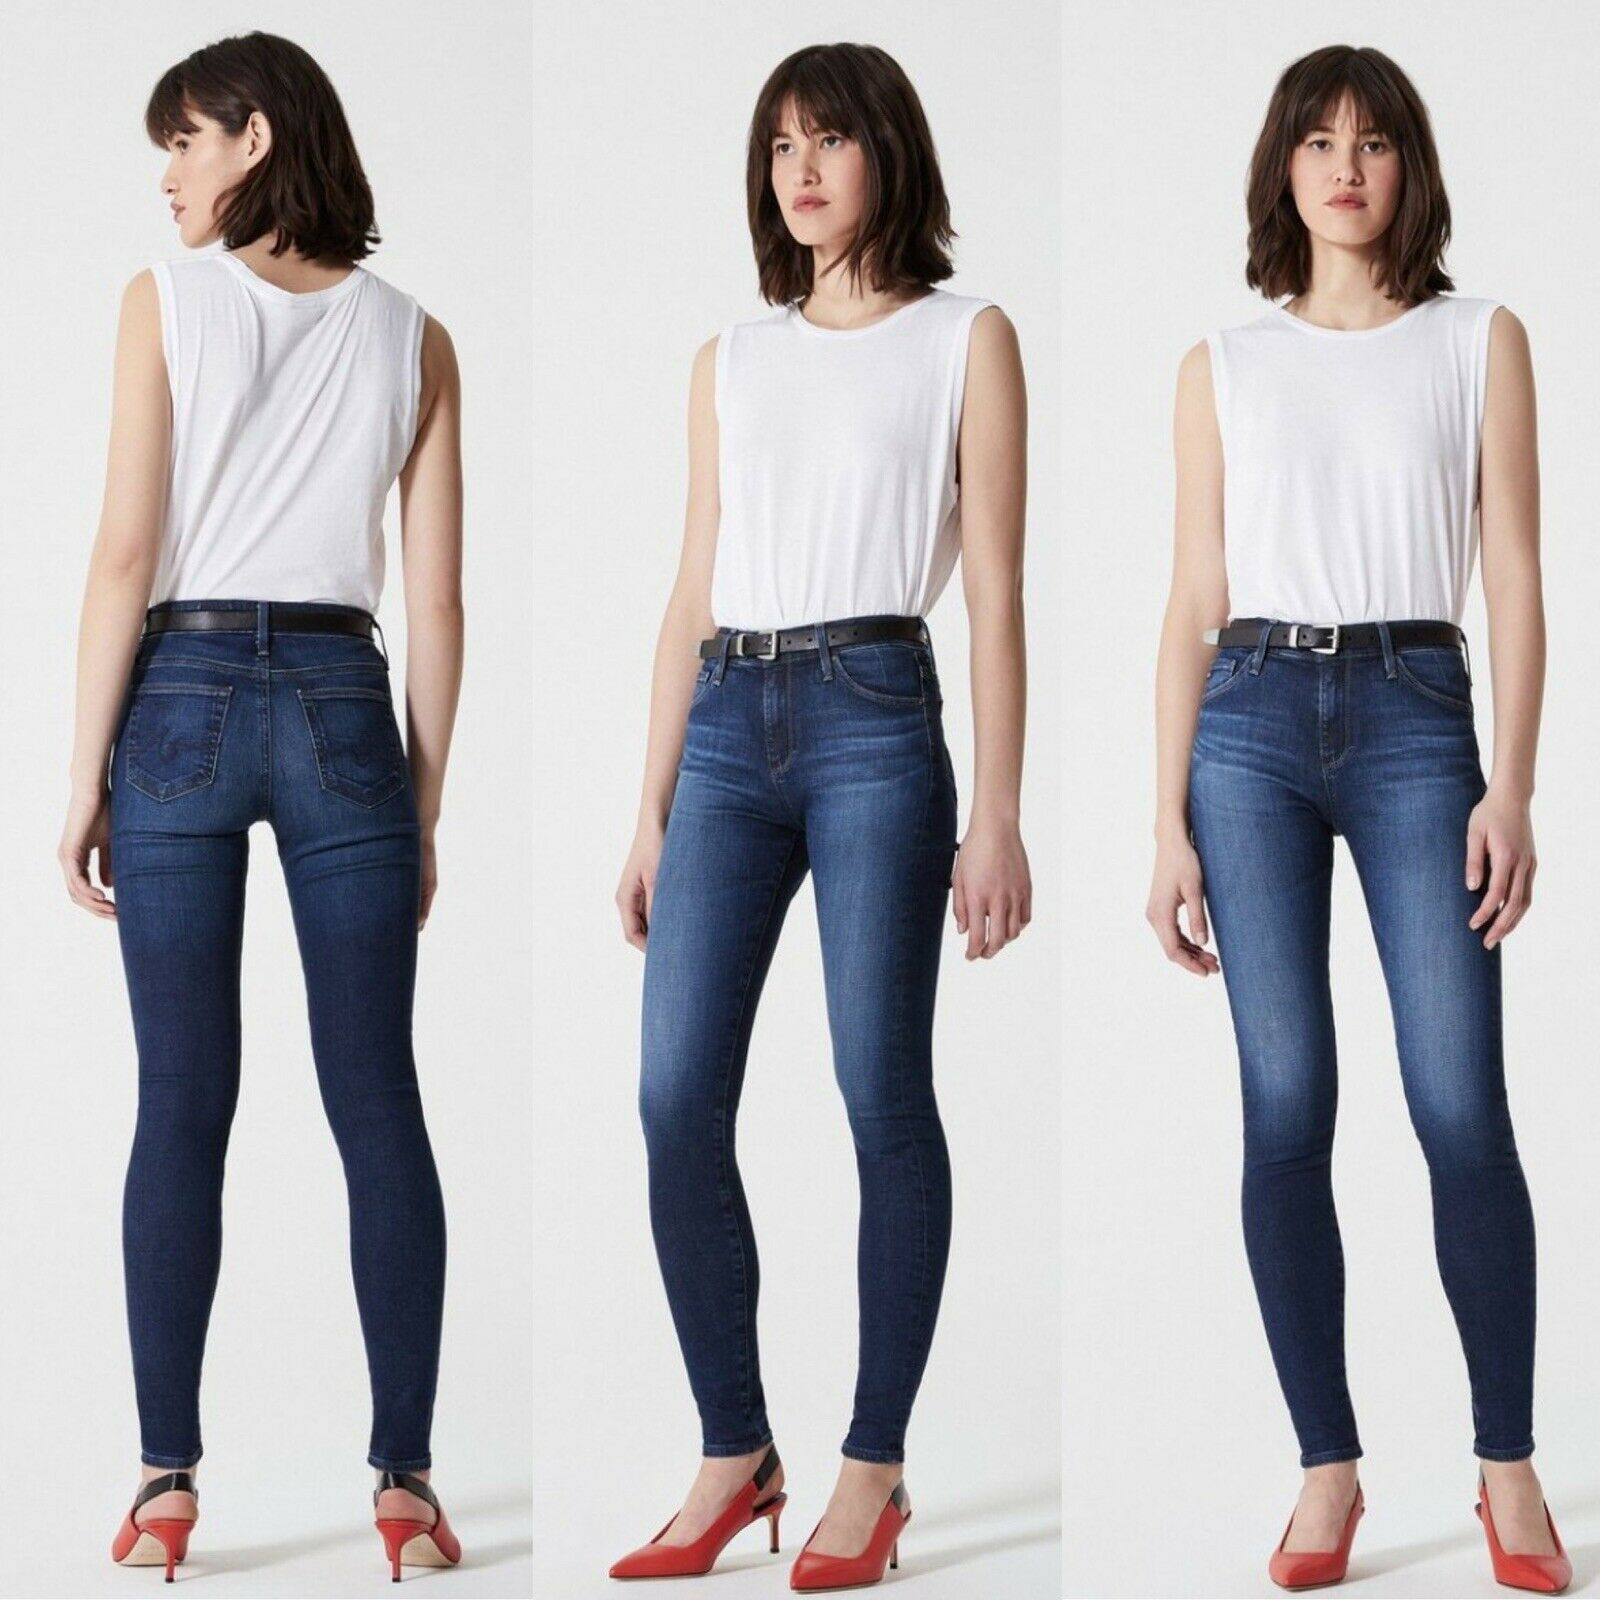 AG Adriano goldschmied Womens 26 The Farrah High Rise Skinny Jean